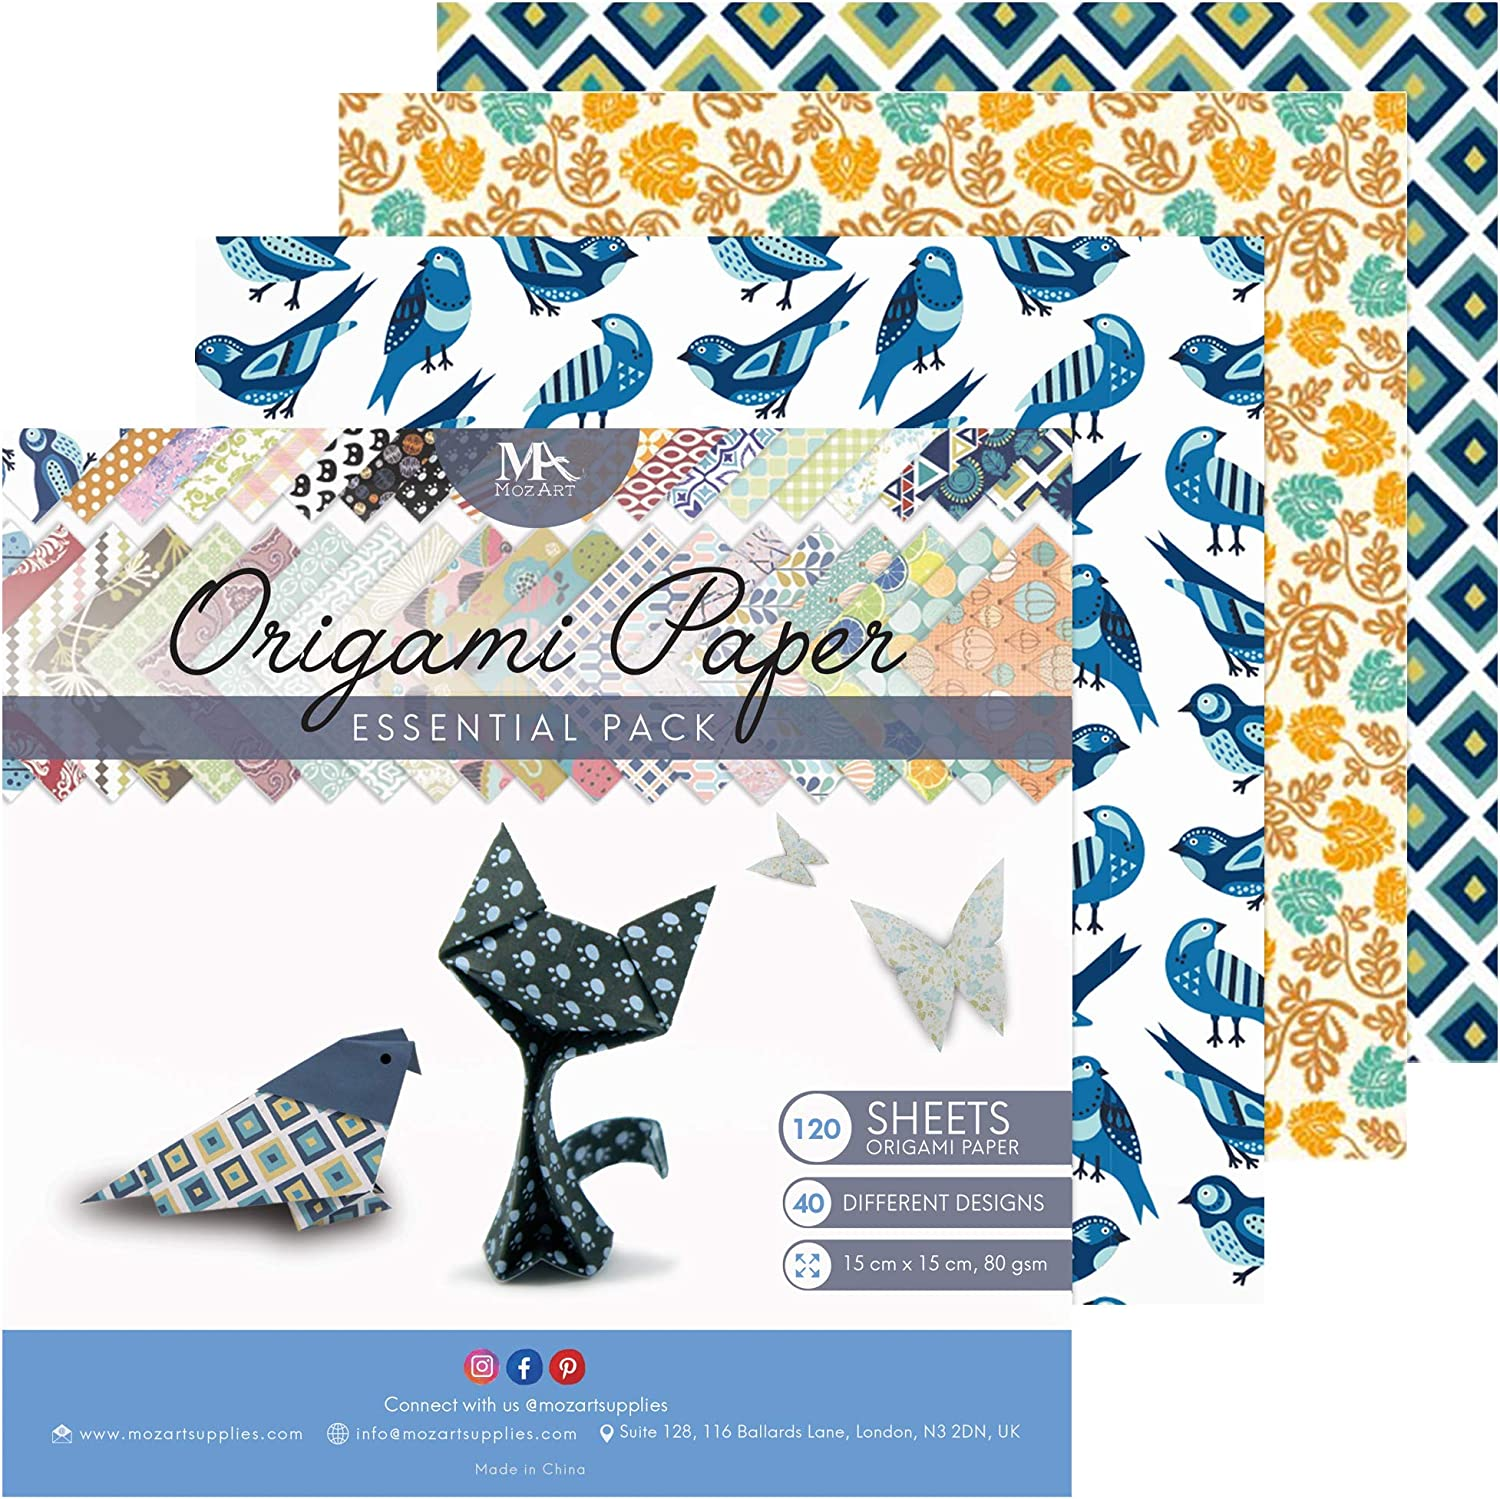 Origami Paper Set - 120 Sheets - Traditional Japanese Folding Papers including Floral, Animal Prints, Aztec, Geometric - Origami Papers for Kids & Adults - MozArt Supplies : Office Products